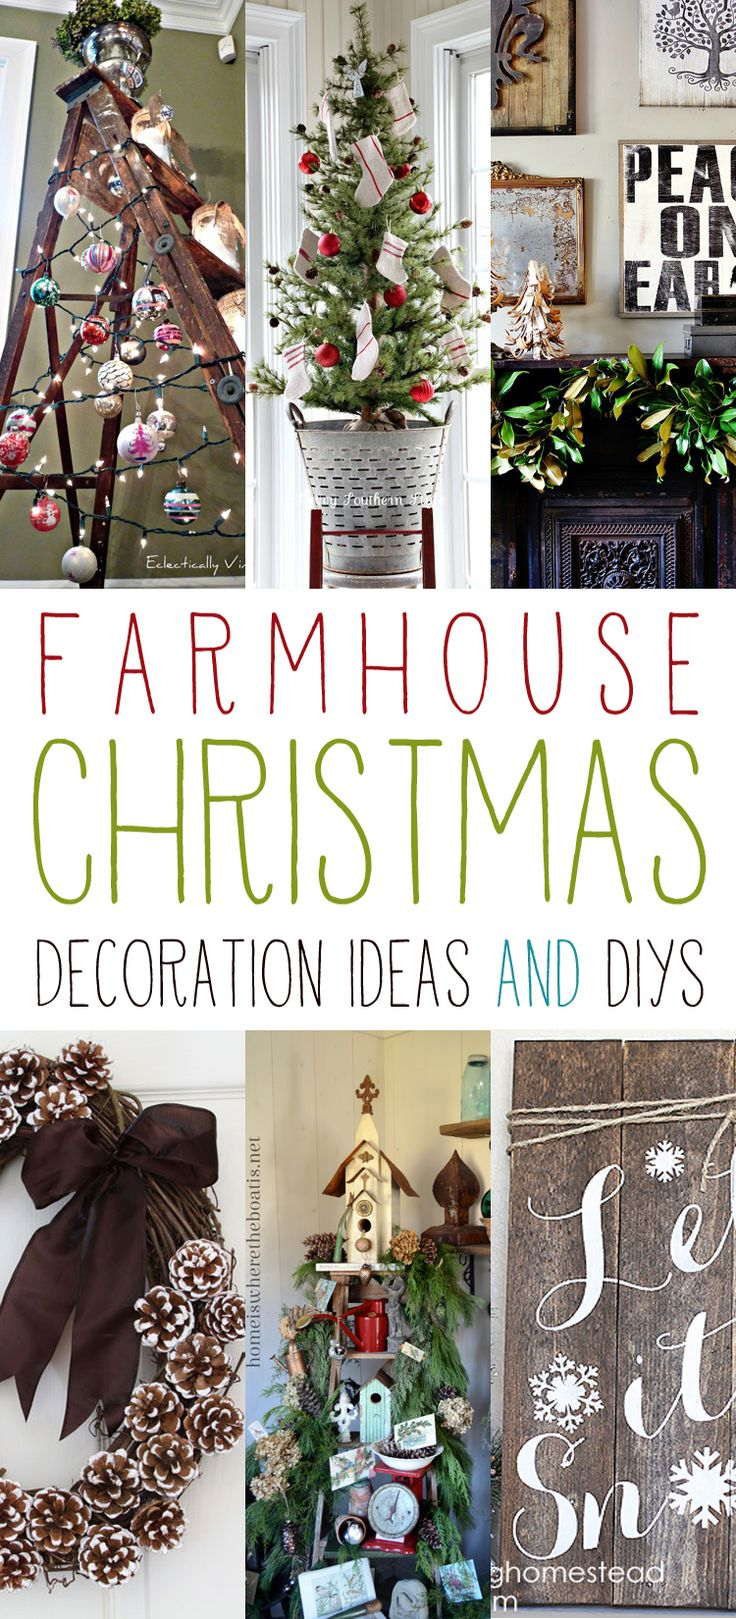 Are you looking to add a touch of Farmhouse Charm to your home this Holiday Season? Check out our collection of Farmhouse Christmas Decoration Ideas & DIYs